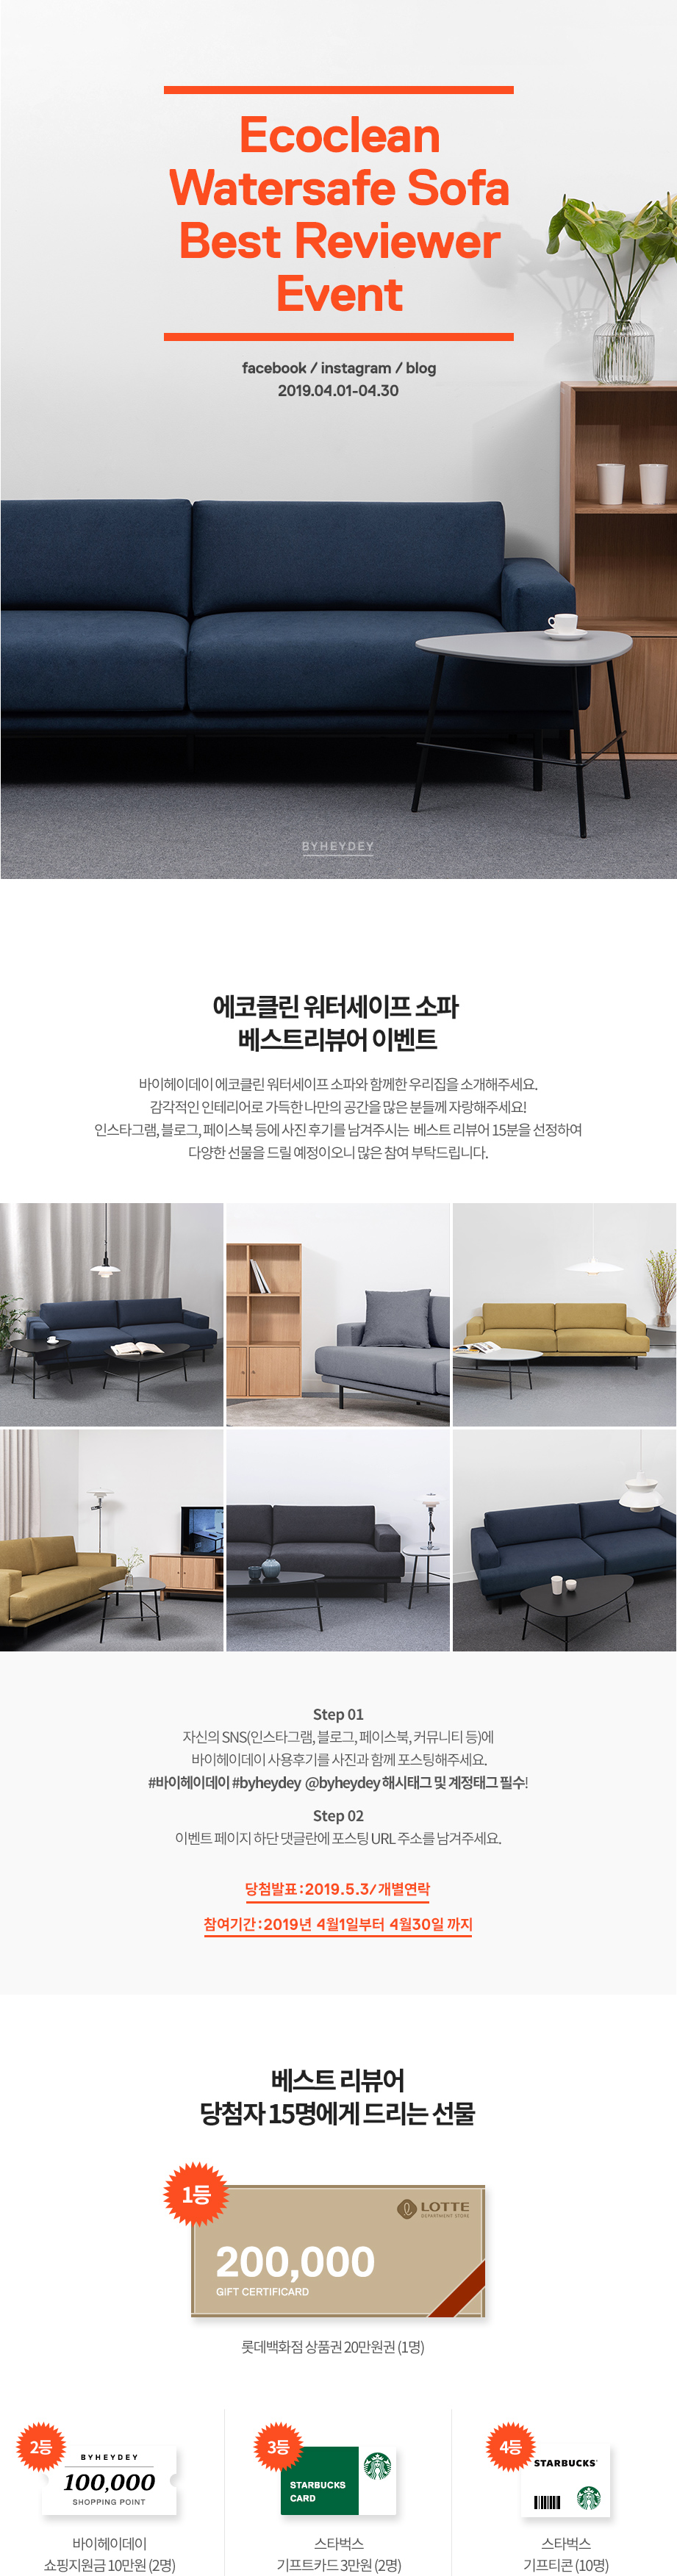 Ecoclean Watersafe Sofa Best Reviewer Event